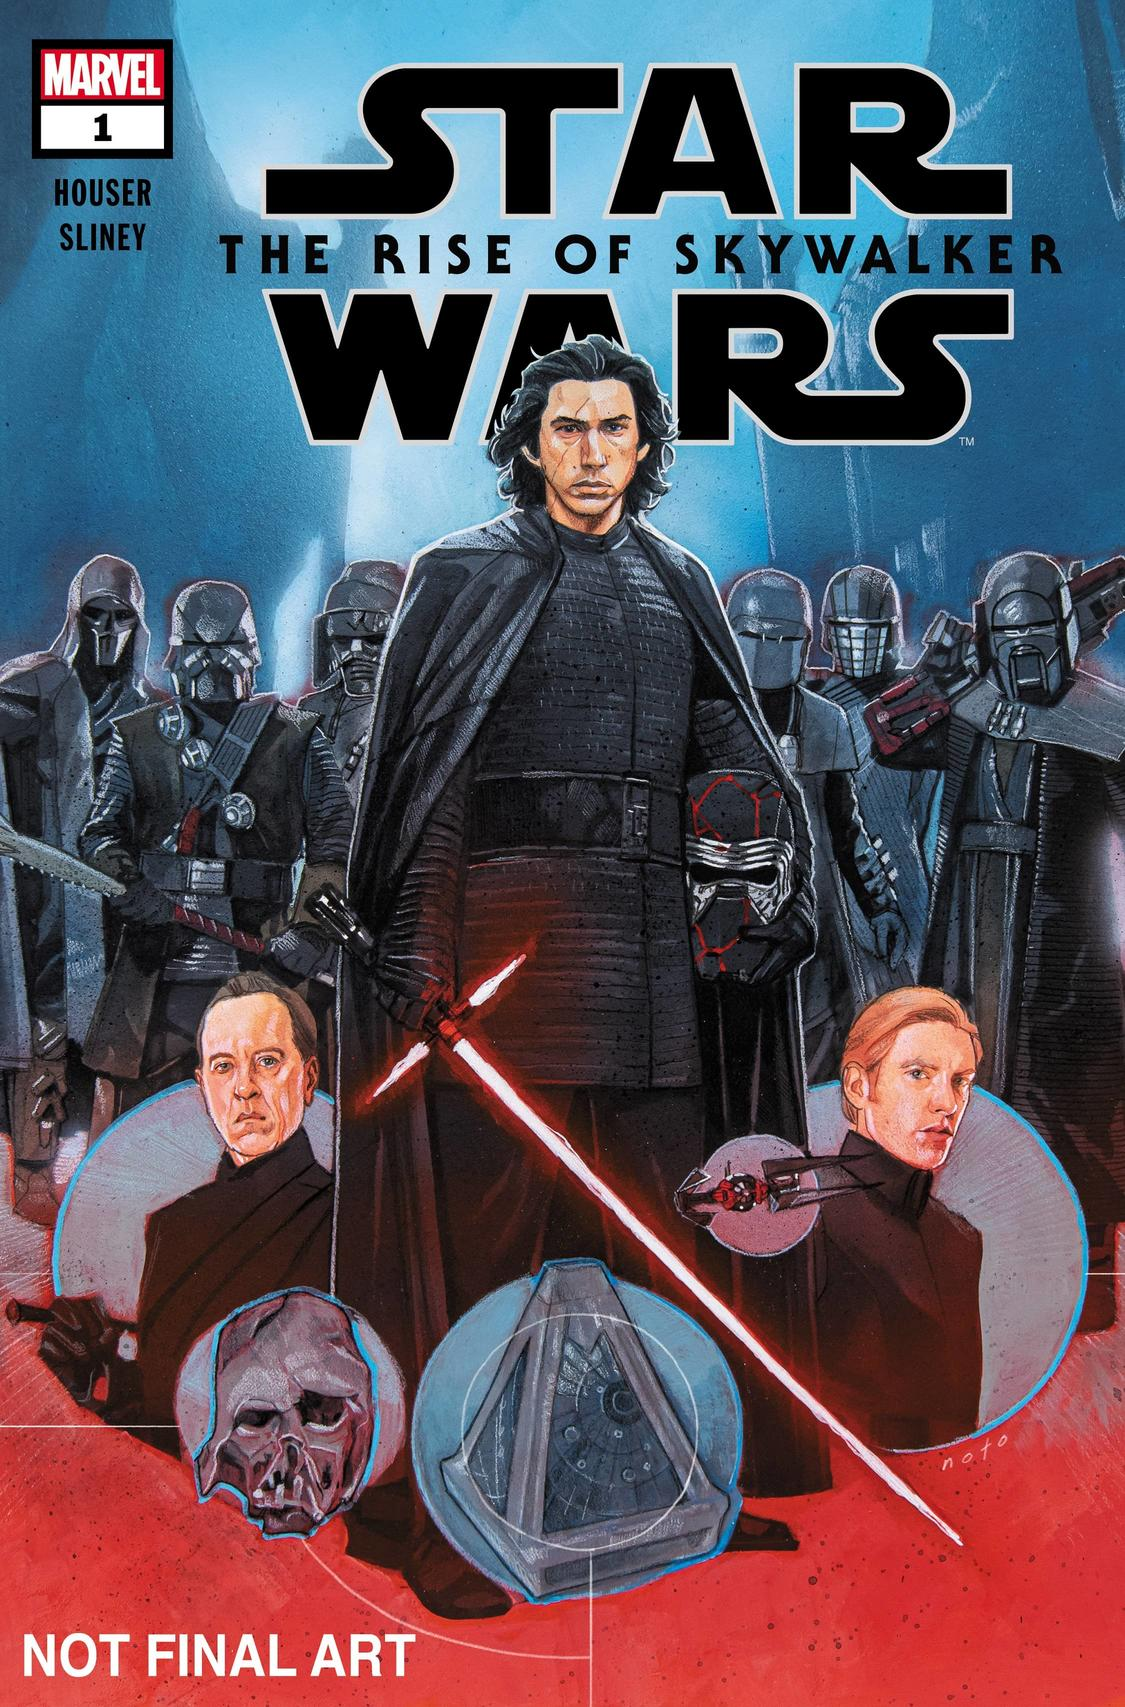 Star Wars The Rise Of Skywalker Gets The Marvel Comics Treatment This June Marvel